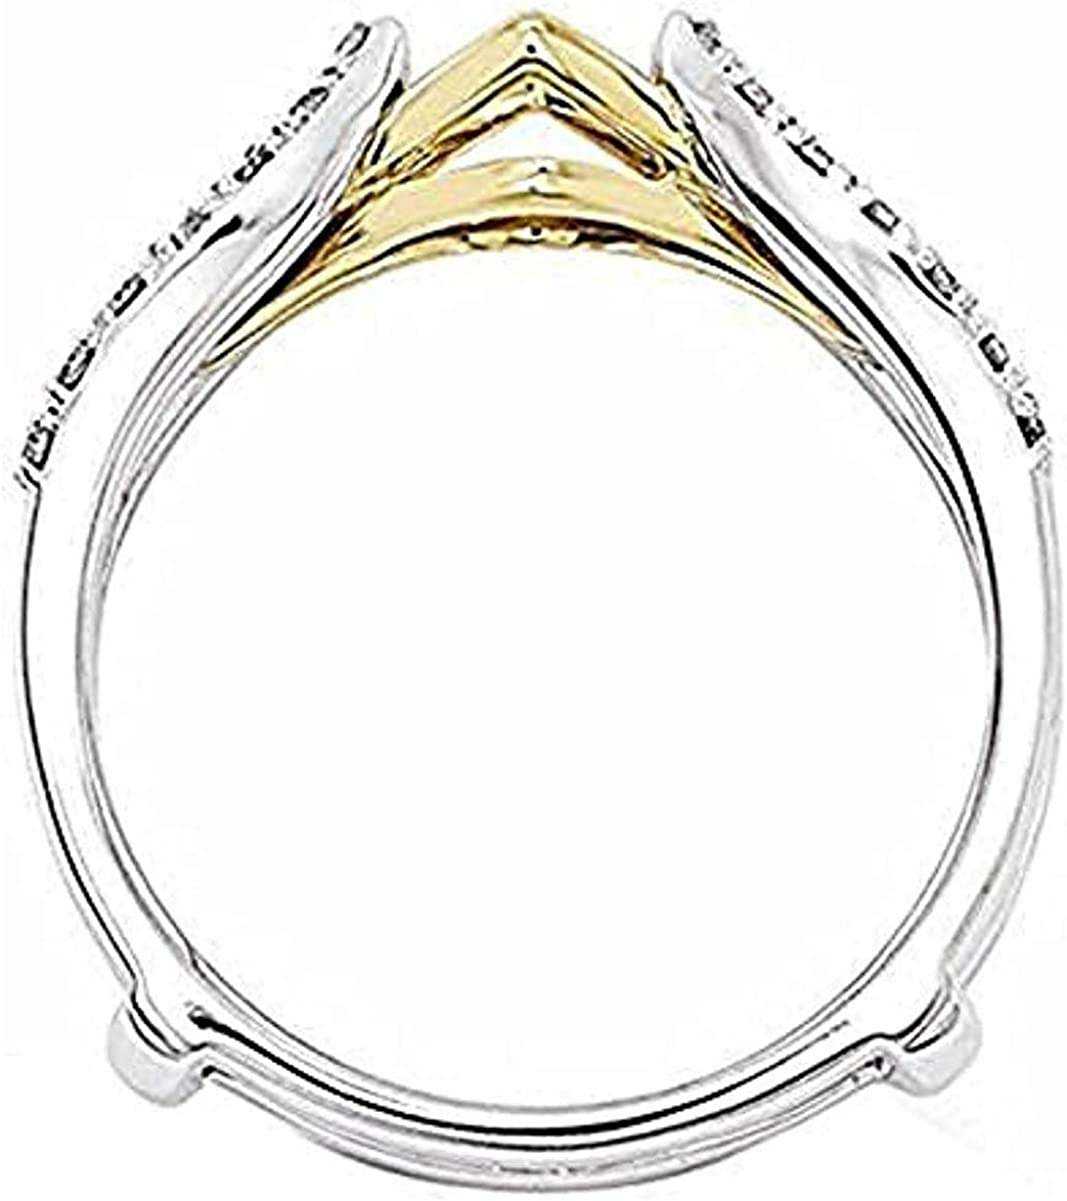 14K Two-Tone Gold Plated 925 Sterling Silver 0.70 Ct Round Cut Cubic Zirconia Ladies Anniversary Wedding Enhancer Ring Guard